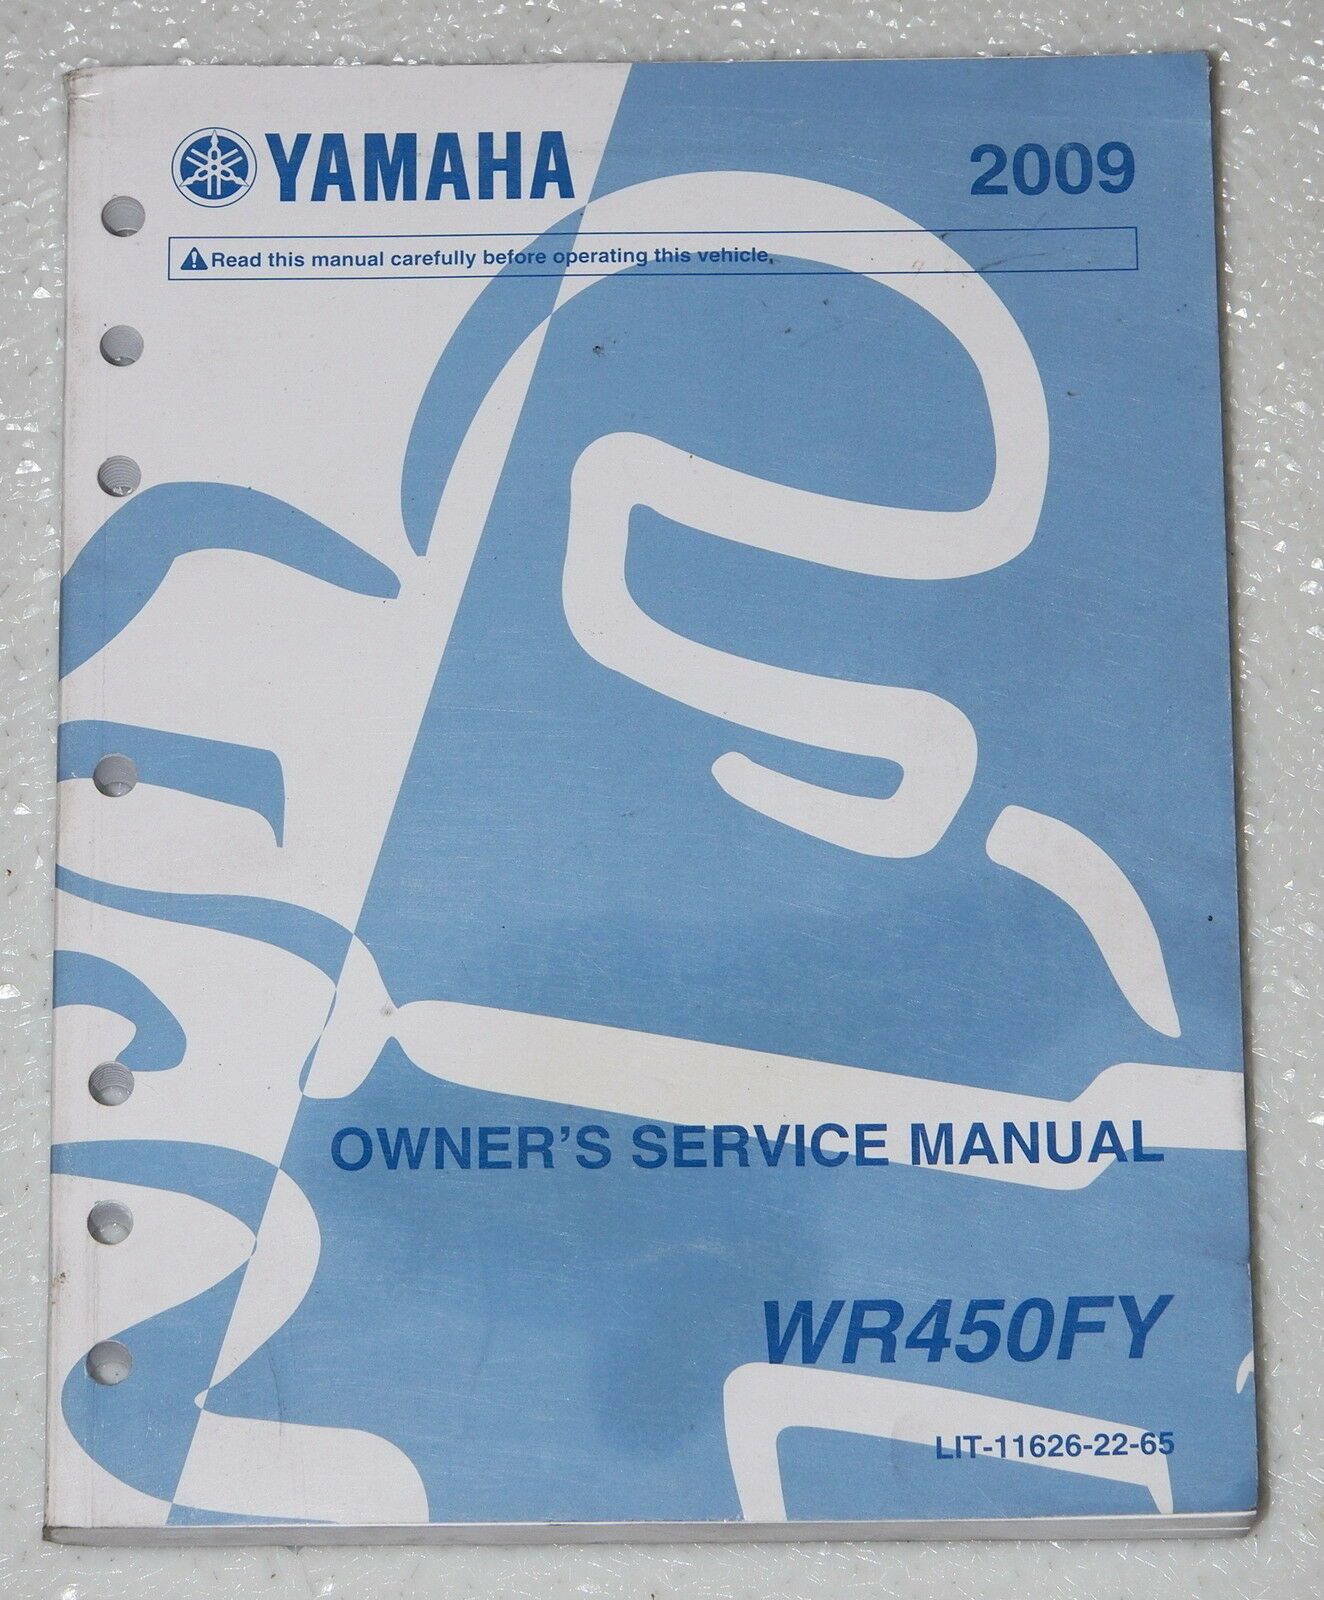 2009 YAMAHA WR450FY WR450F WR450 Motorcycle Original Owners Shop Service  Manual 1 of 1Only 1 available ...